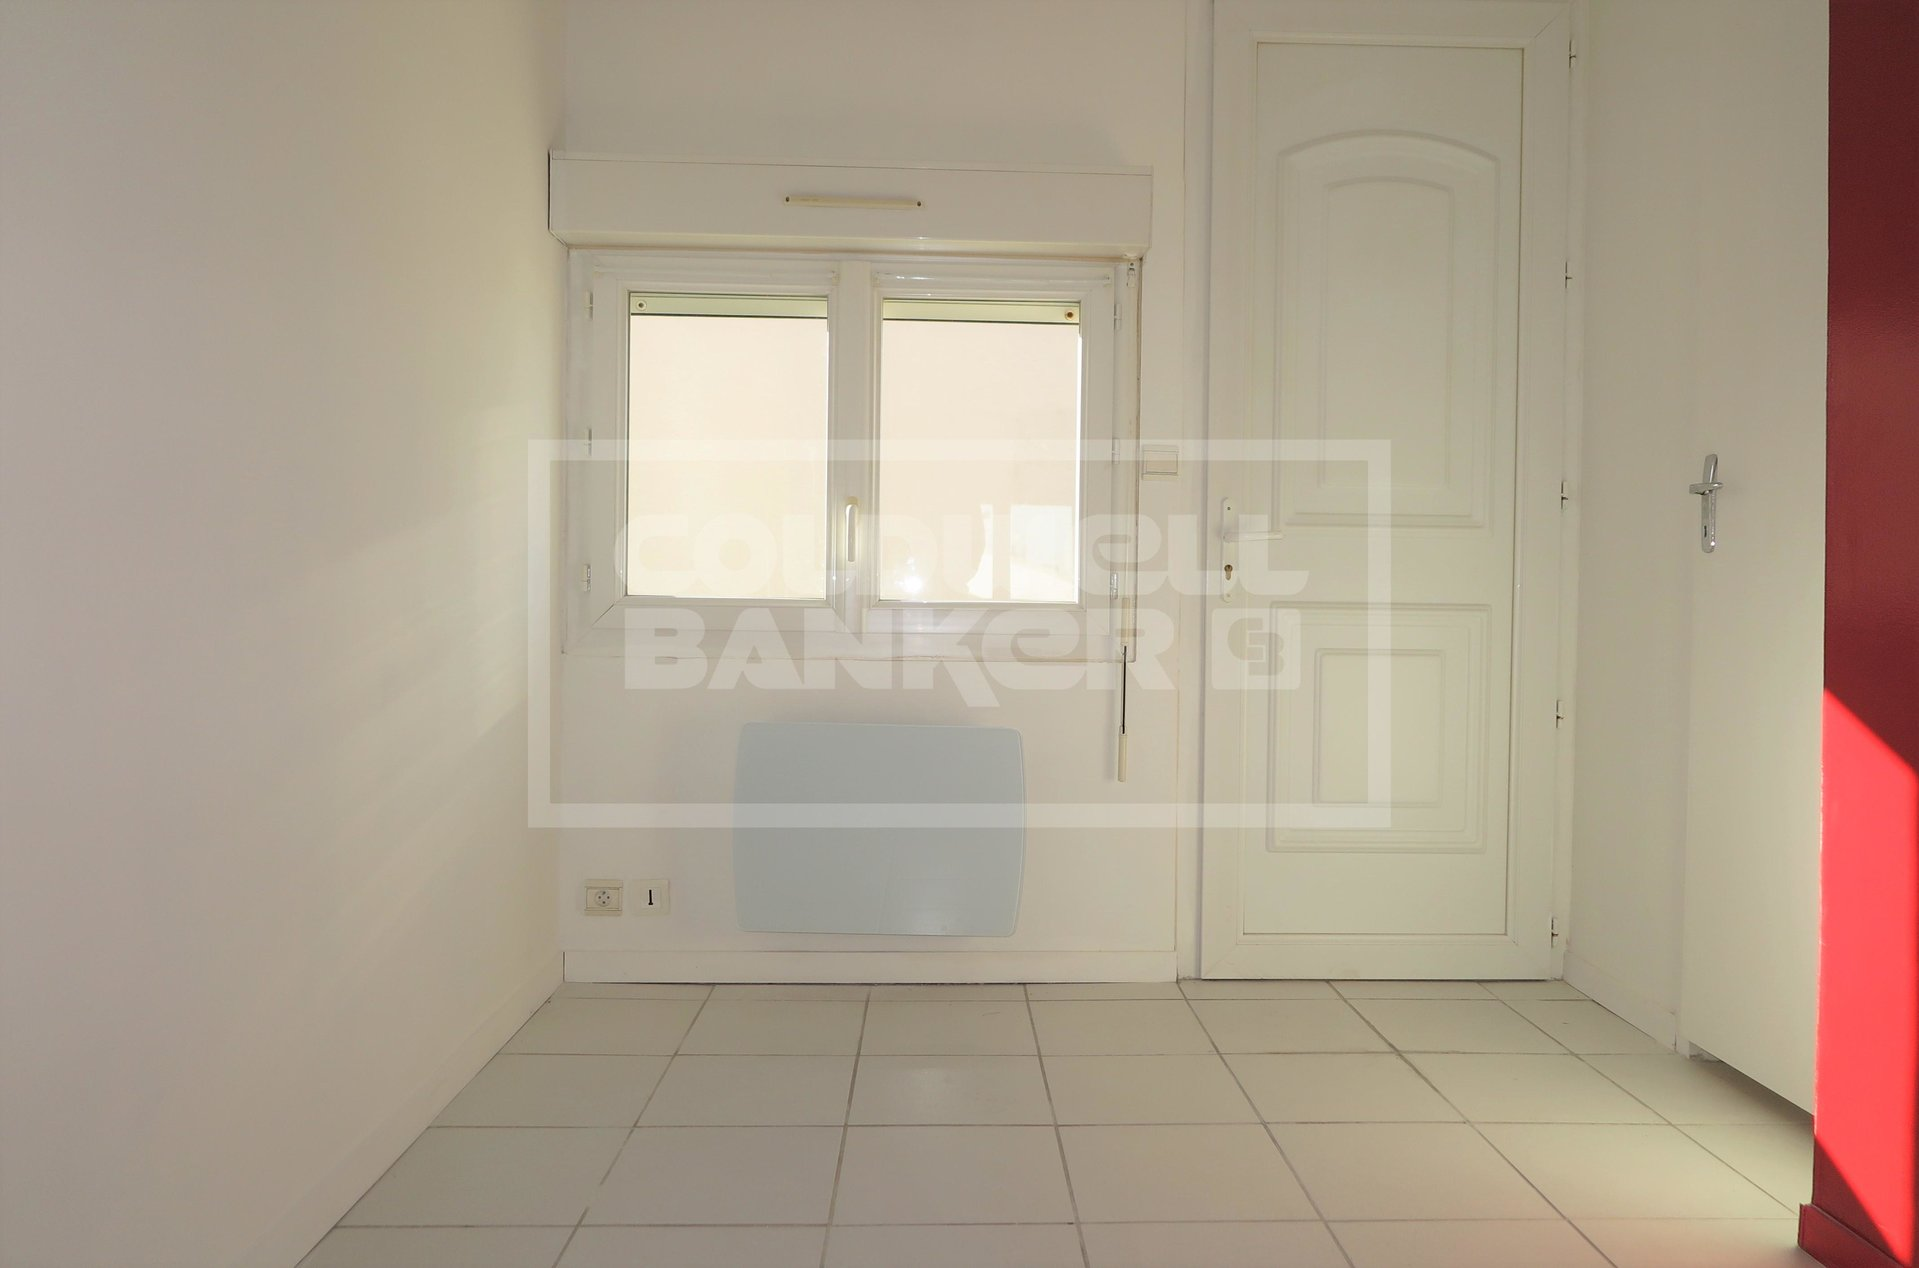 40 sqm apartment with courtyard and parking space for Sale in Royan.